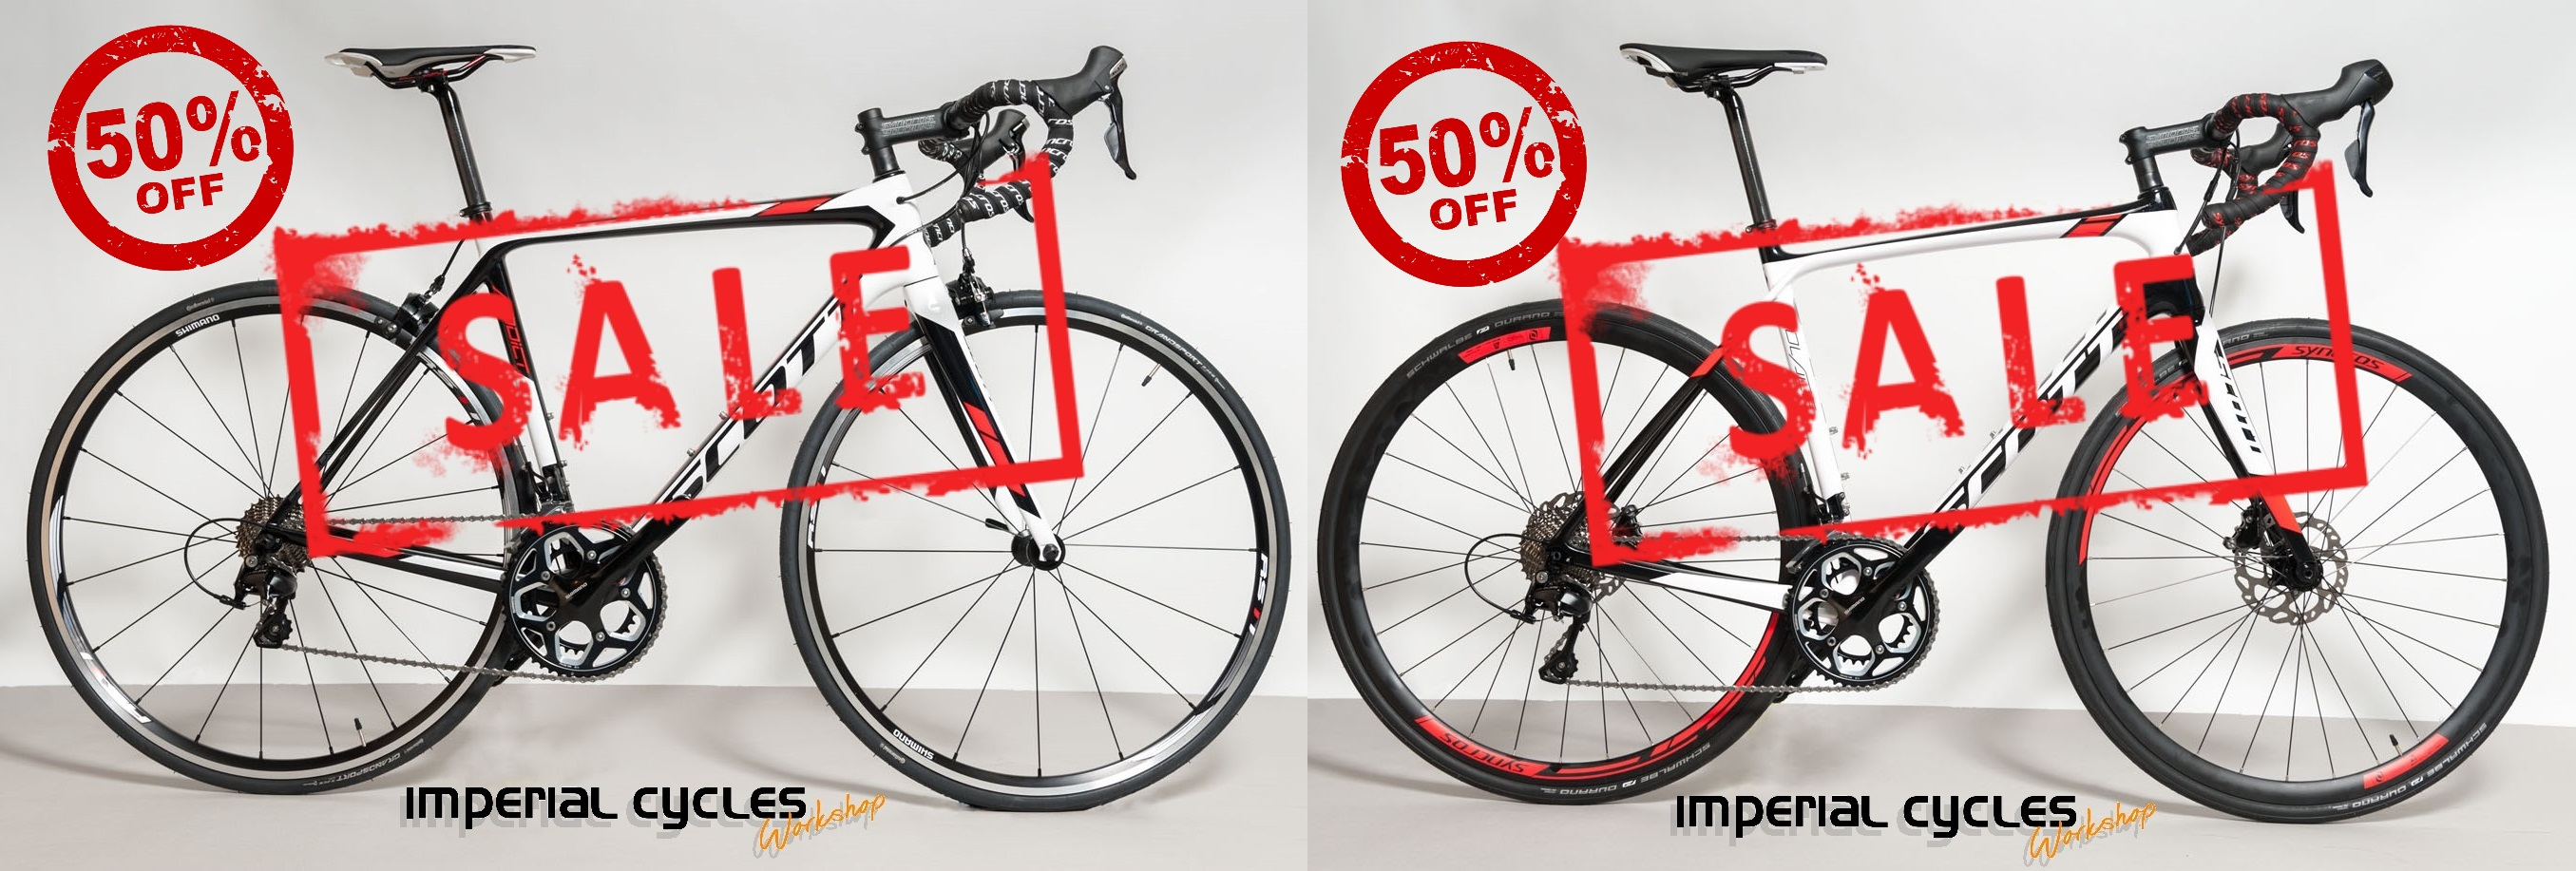 imperial cycles Scott bikes sale